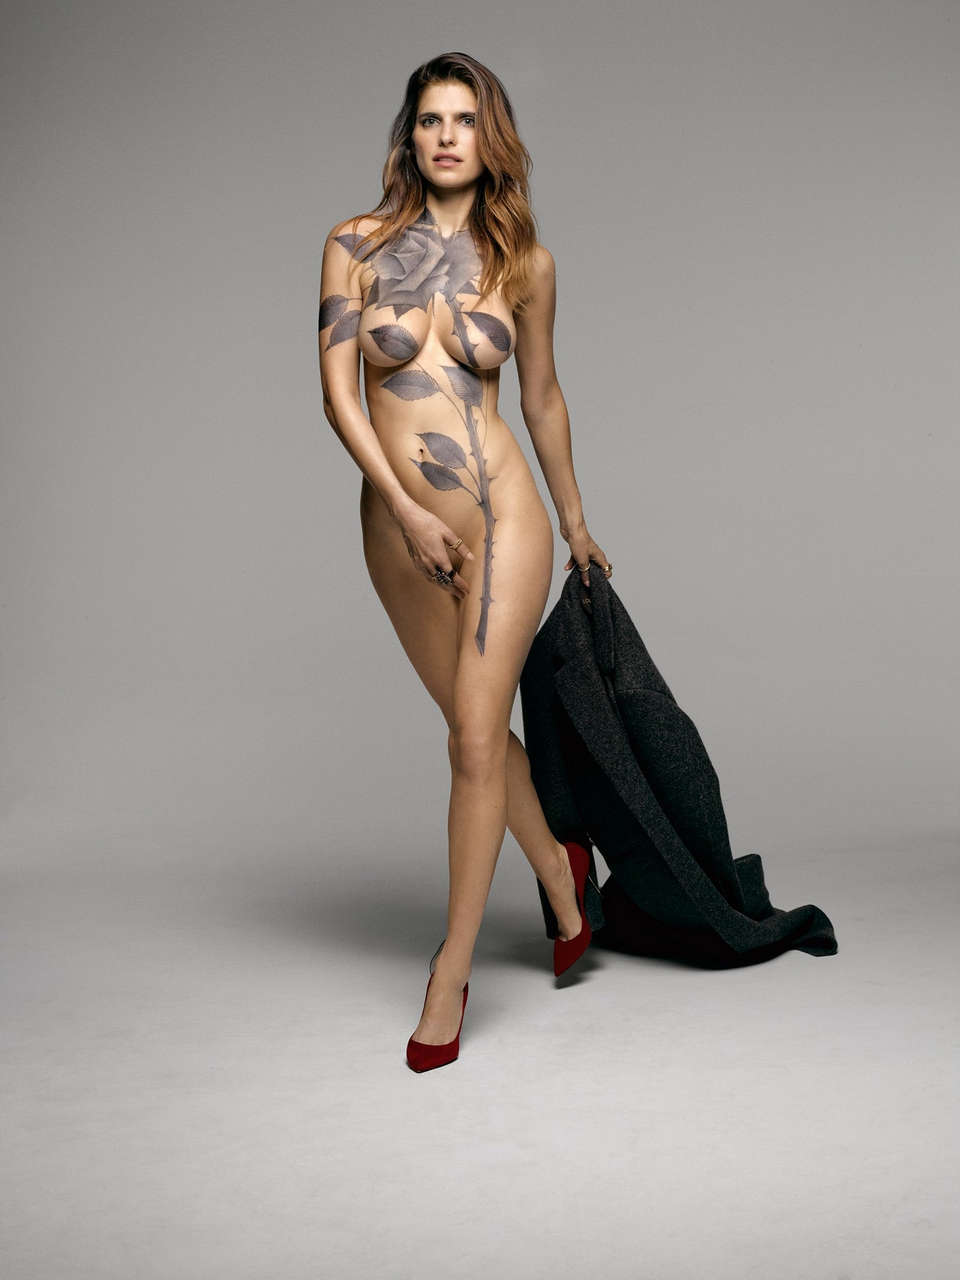 Lake Bell In The New York Magazine Complete Photo Shoot In The Comments NSFW